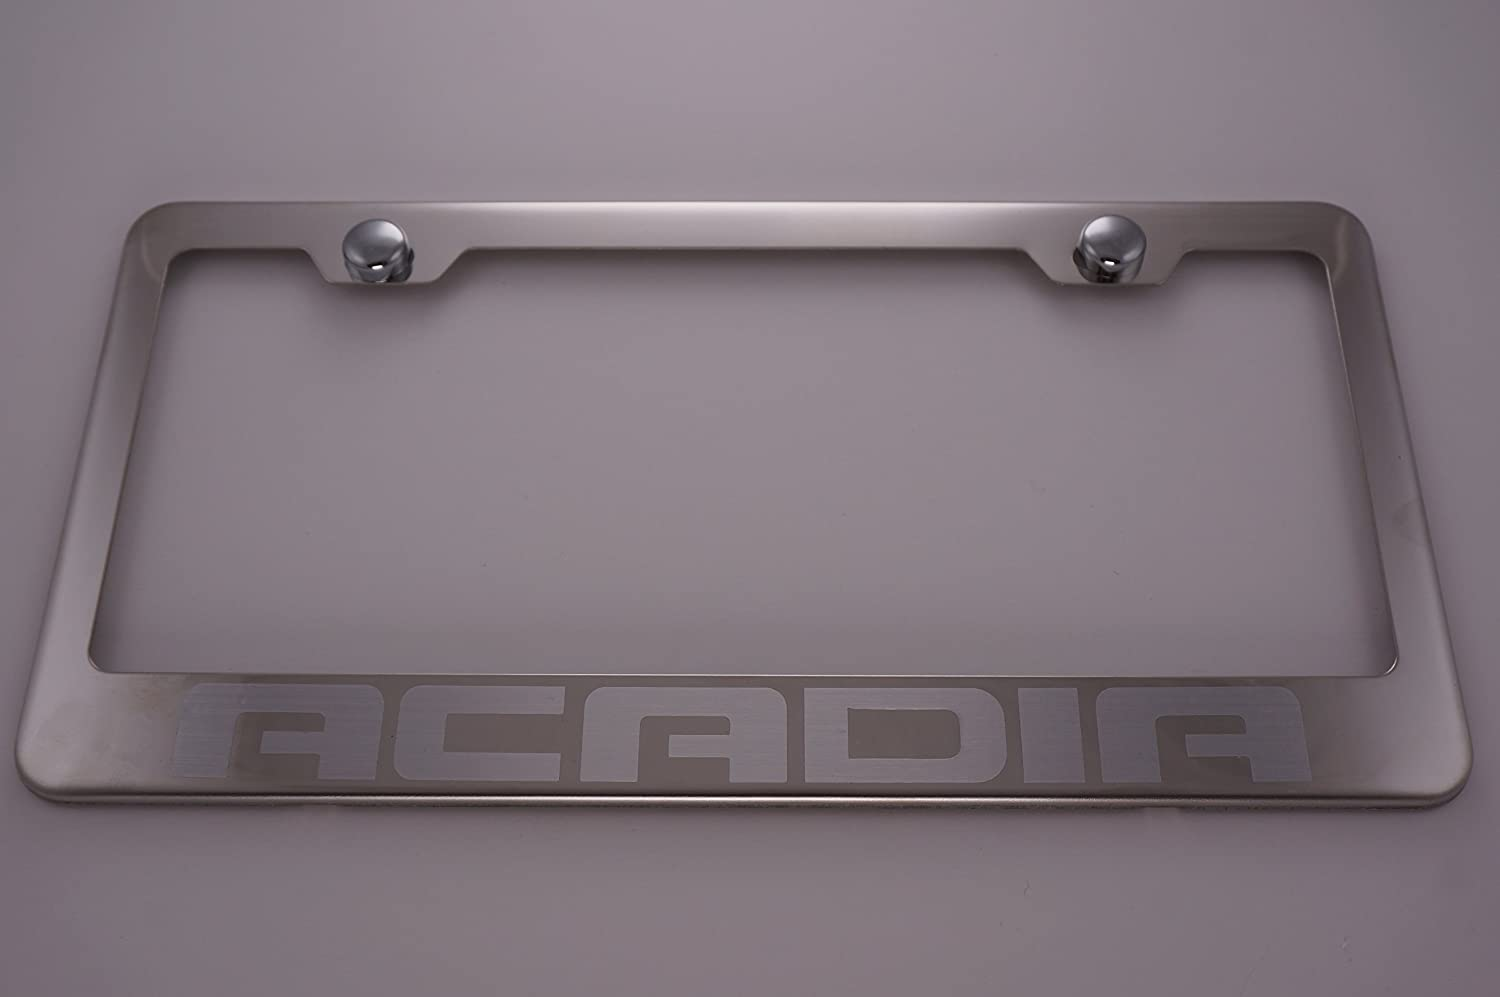 Acadia GMC Stainless Steel Black License Plate Frame Rust Free Caps